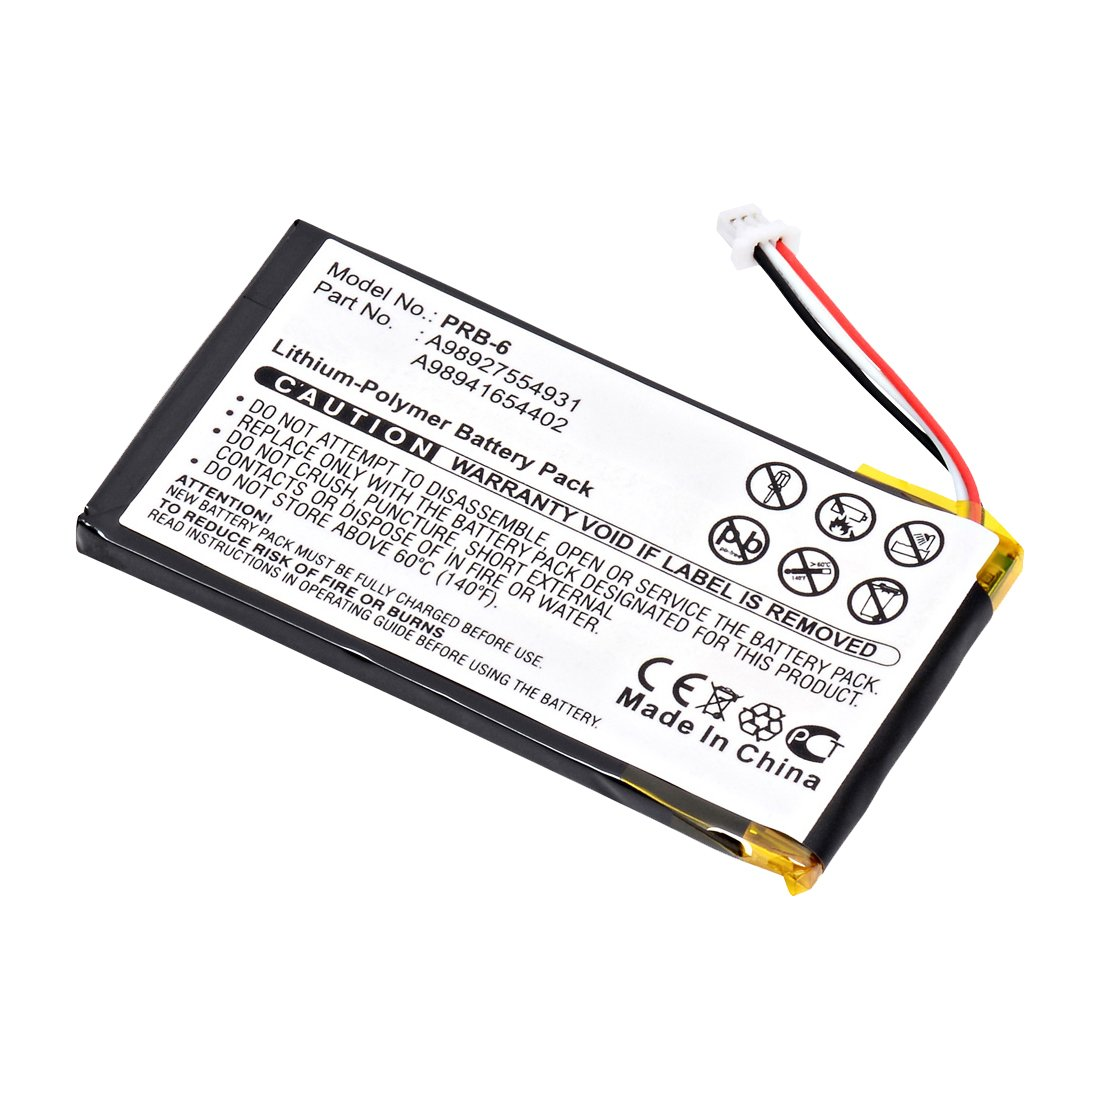 replacement sony prs-600 battery